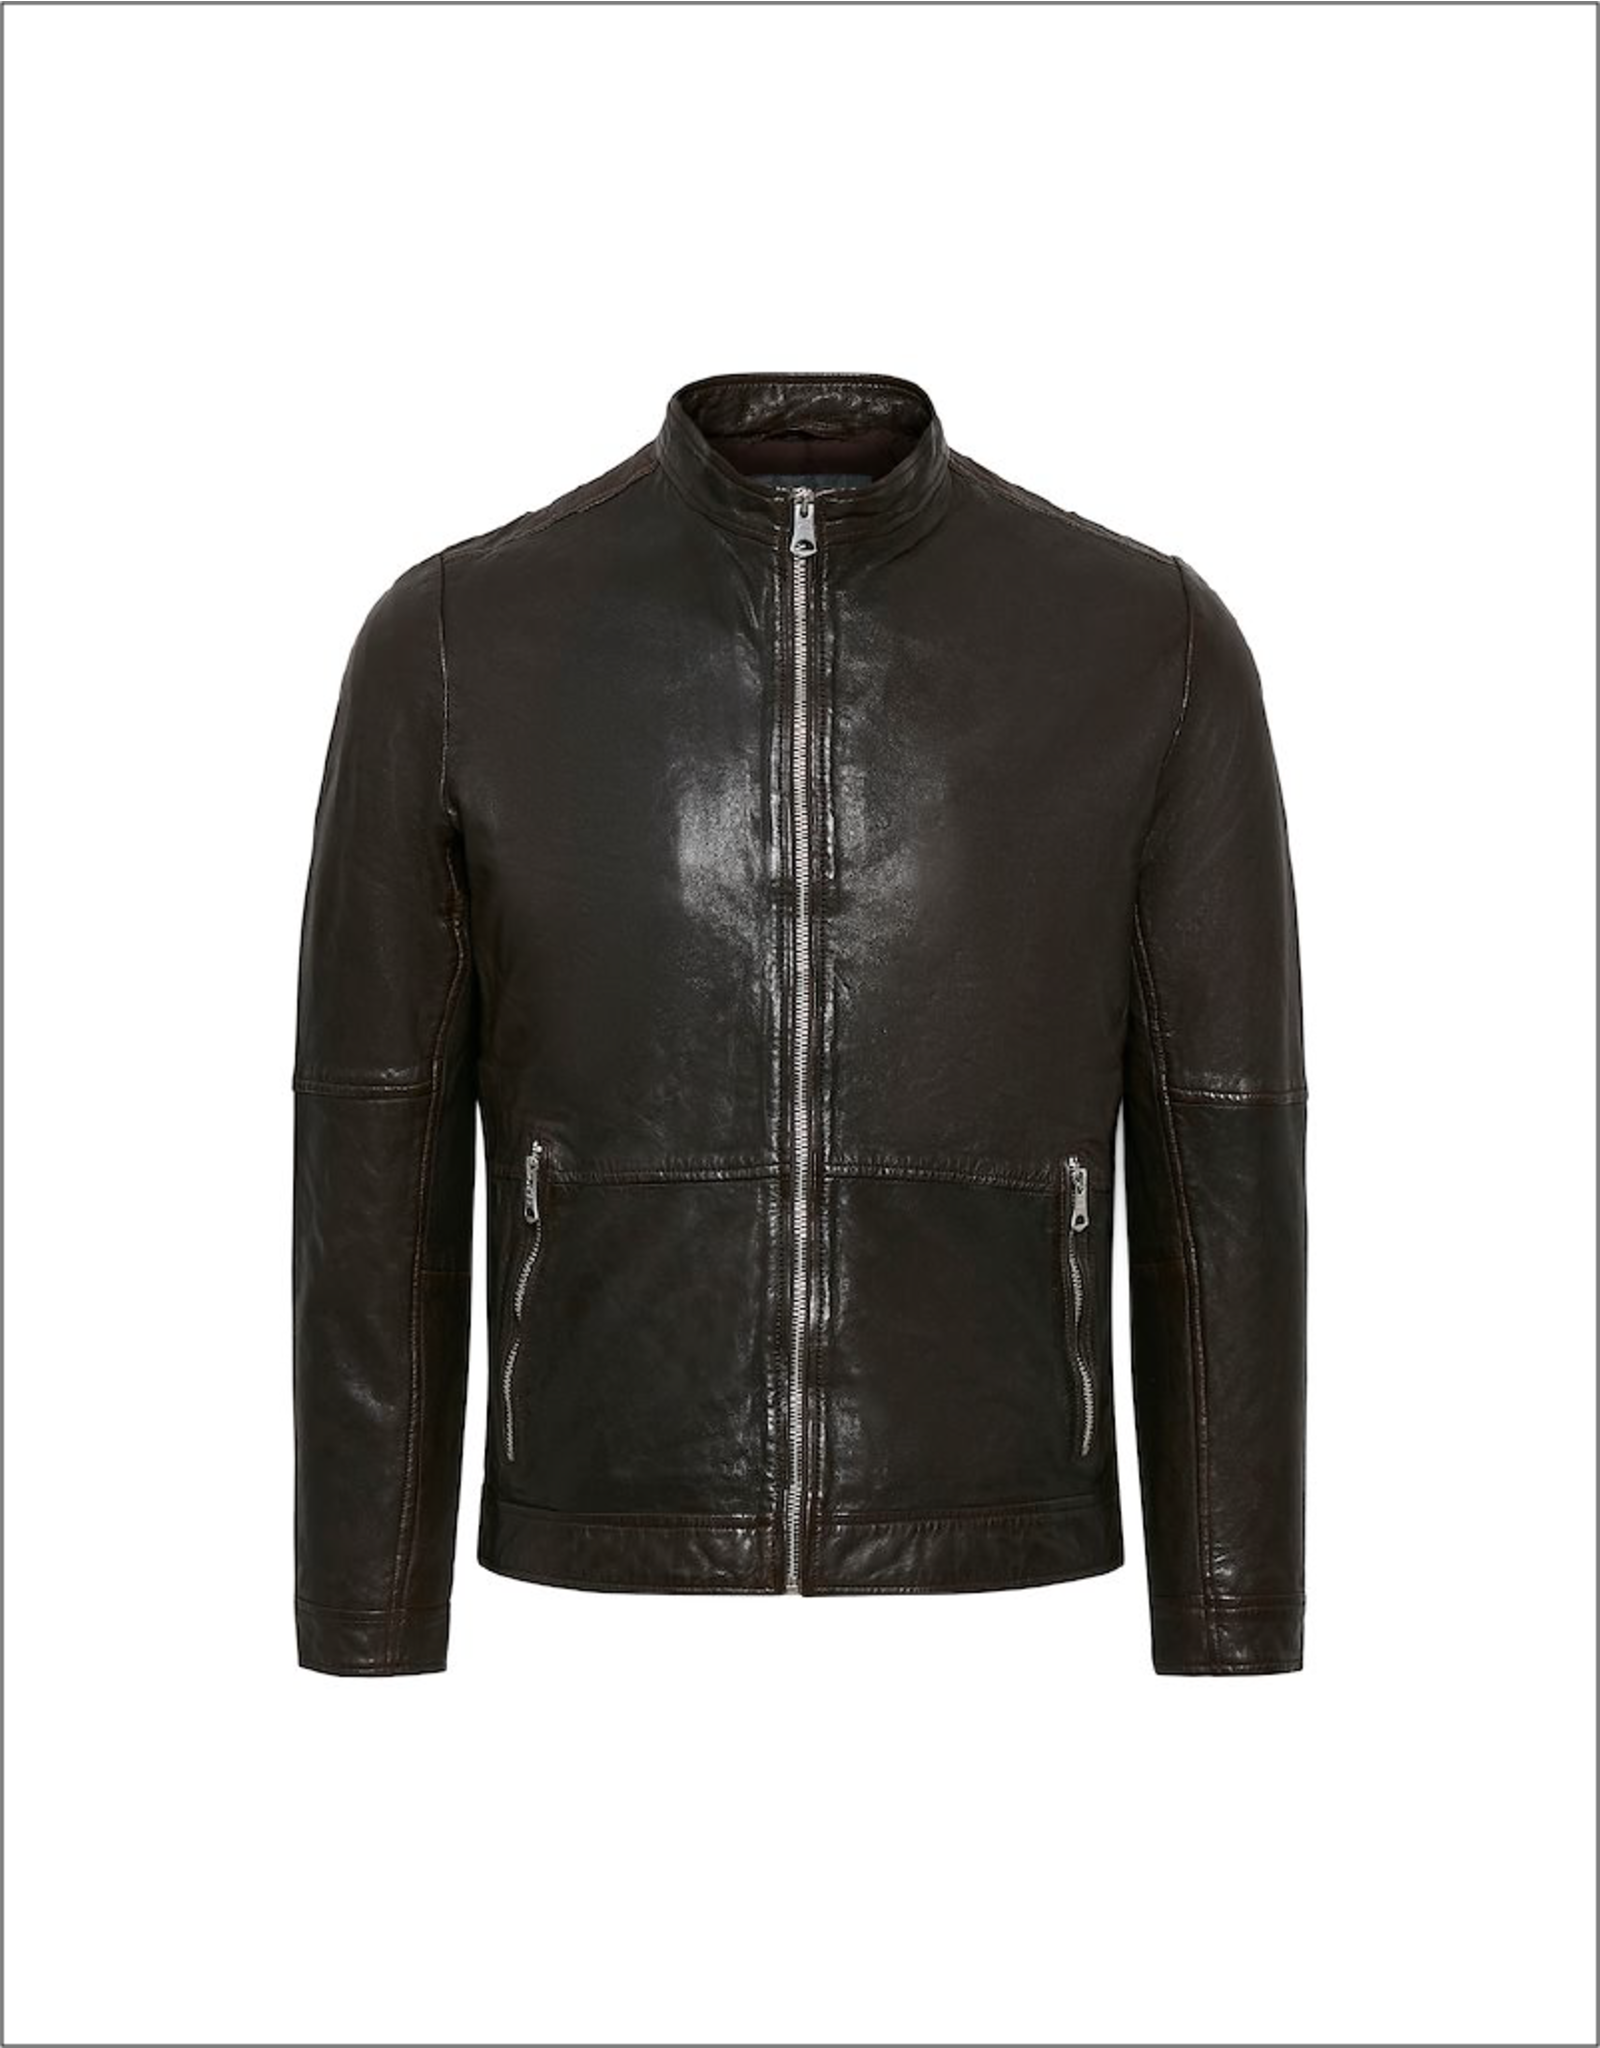 Matinique Matinique Adron Zip Up Leather Jacket